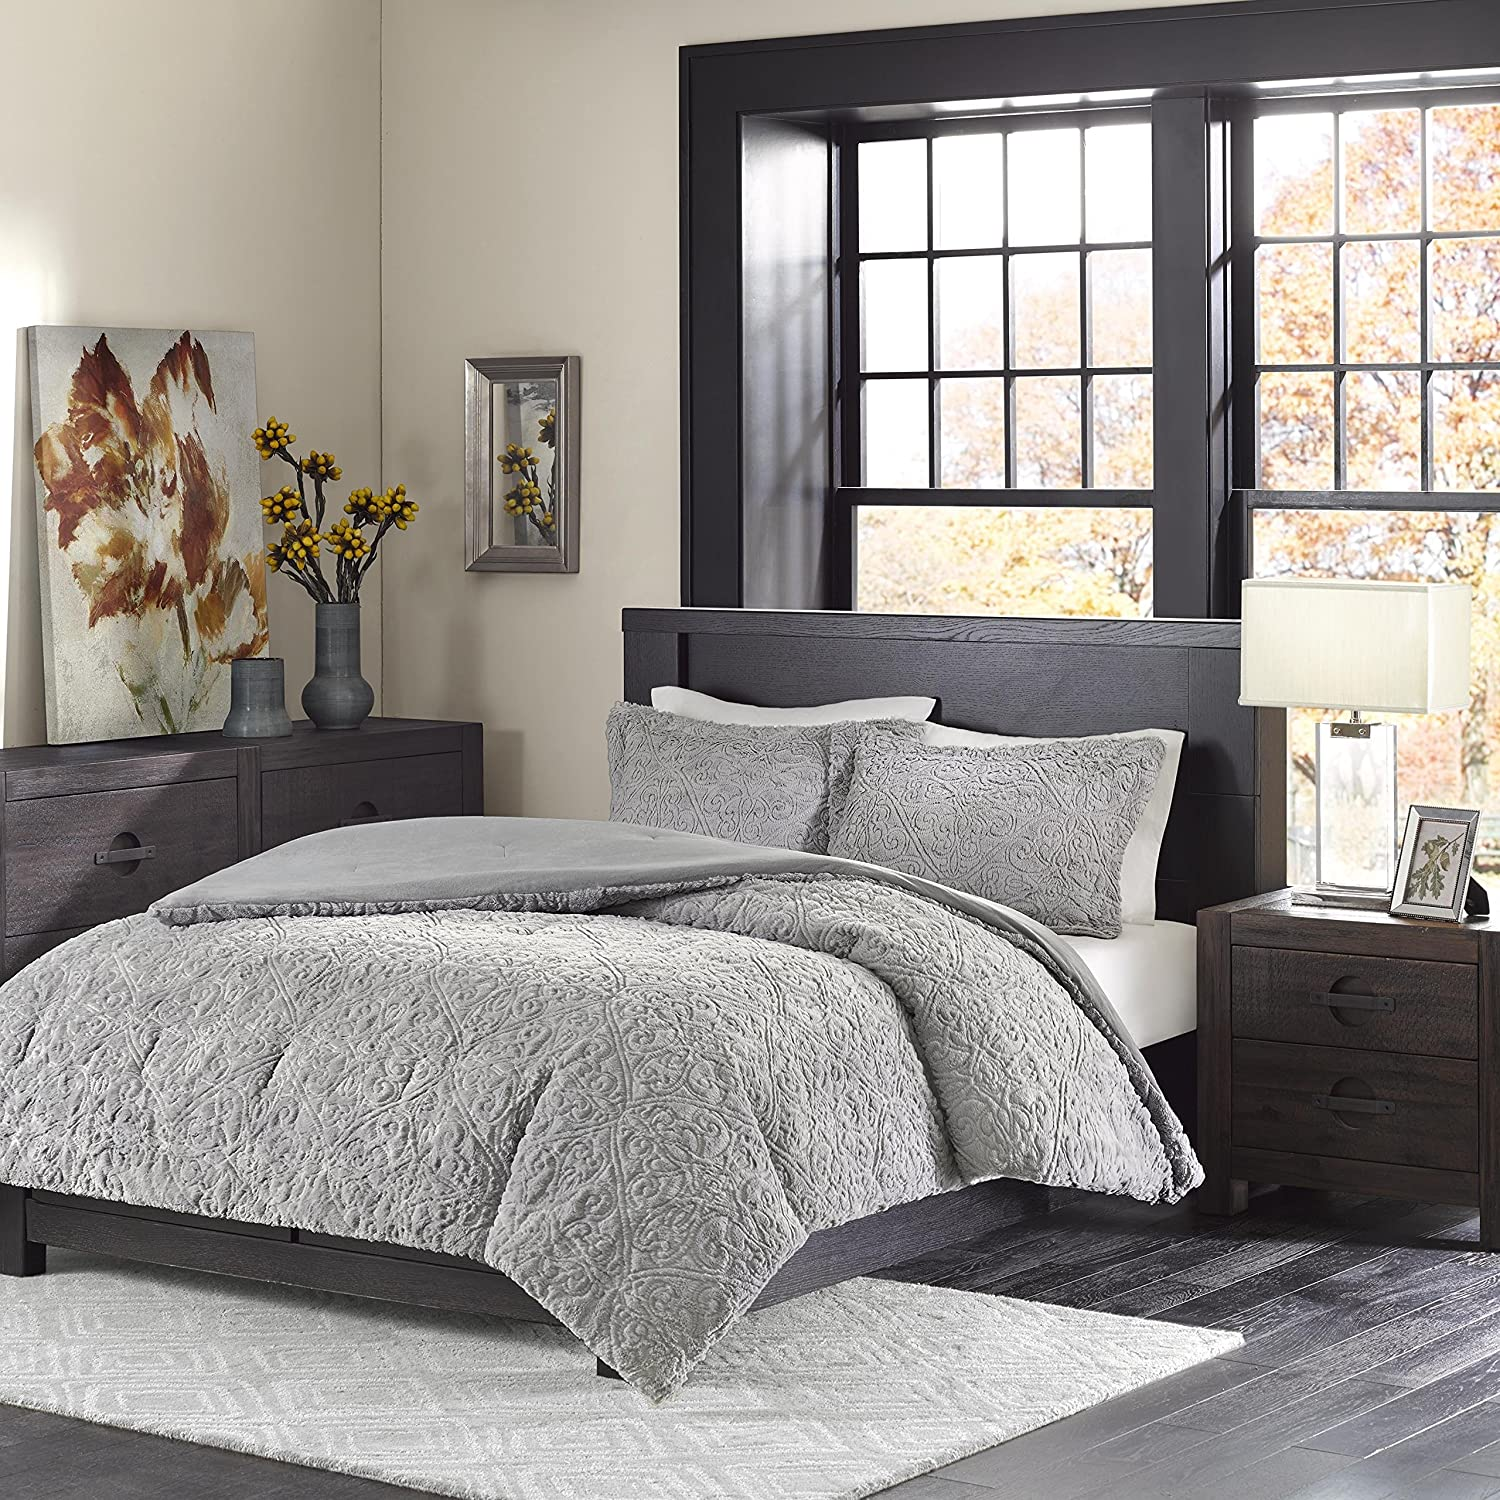 wid faux spin cannon fur hei prod p gray qlt comforter